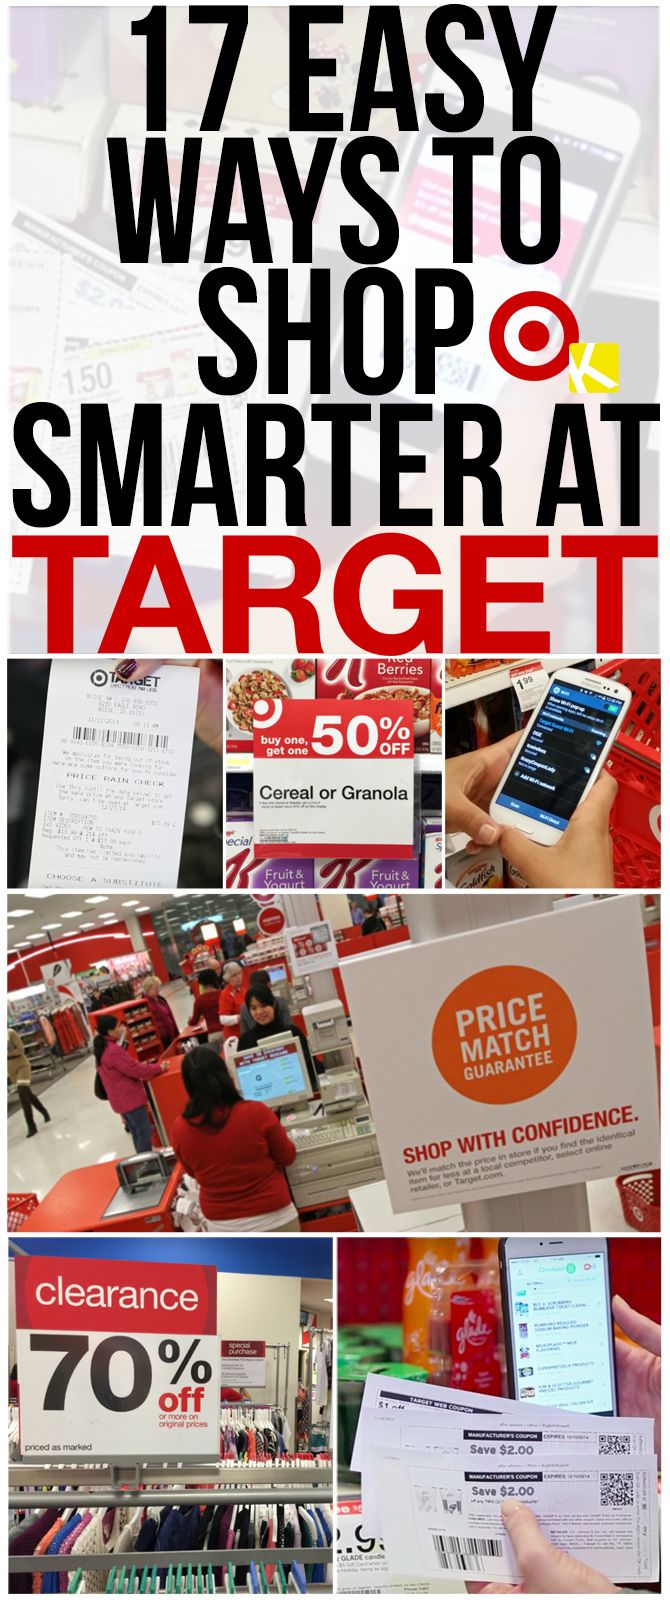 17 Easy Ways to Shop Smarter at Target